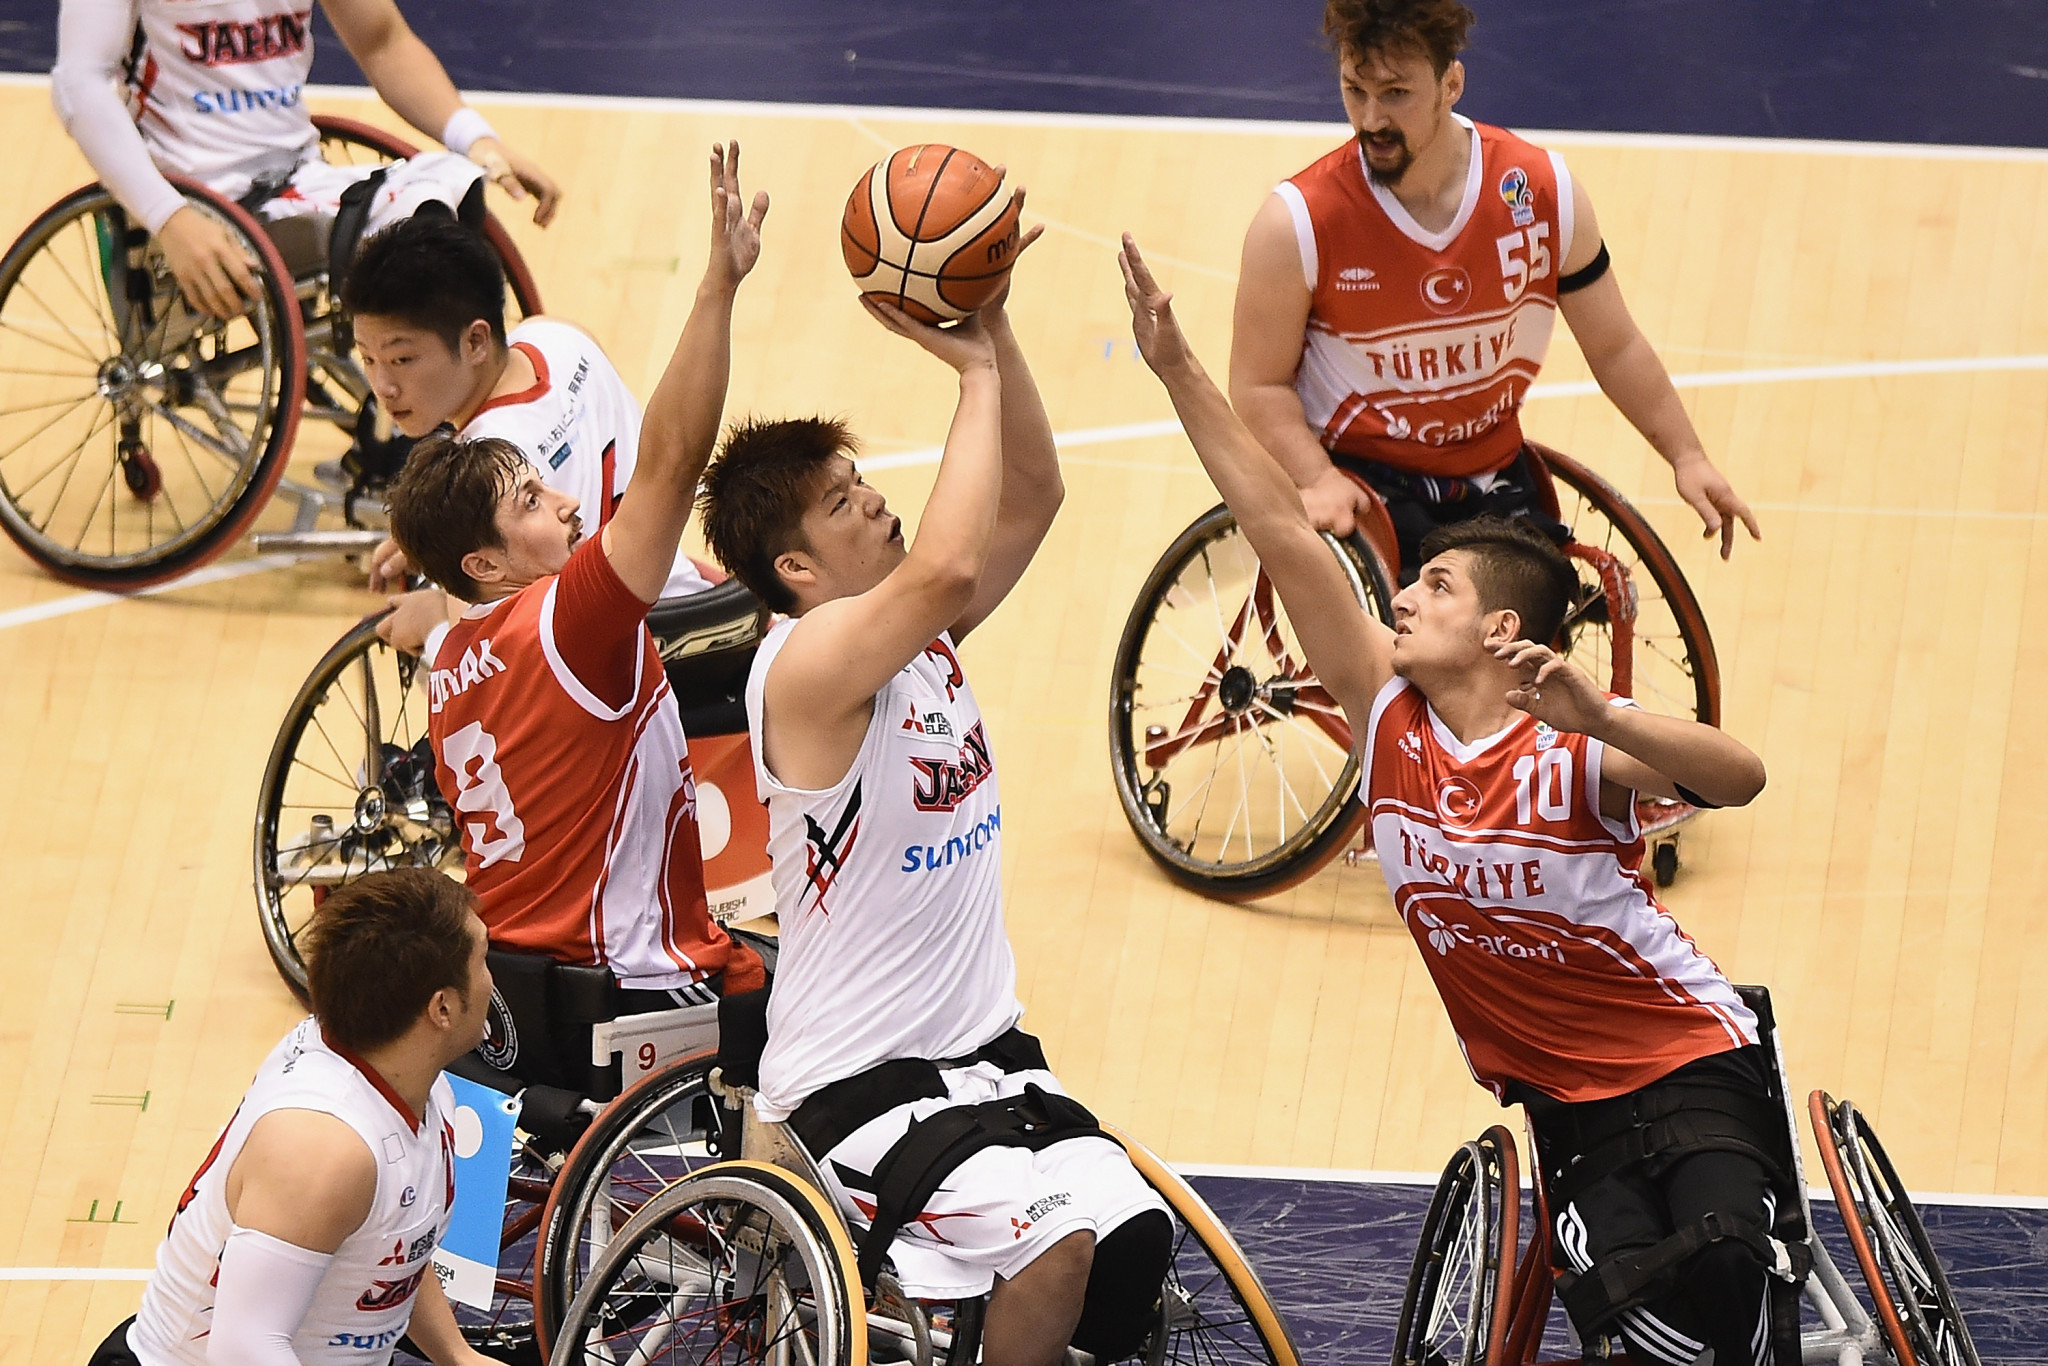 The IPC has rejected a second request from the IWBF for a transition period allowing players embroiled in new classification guidelines to be able to compete at Tokyo 2020 ©Getty Images